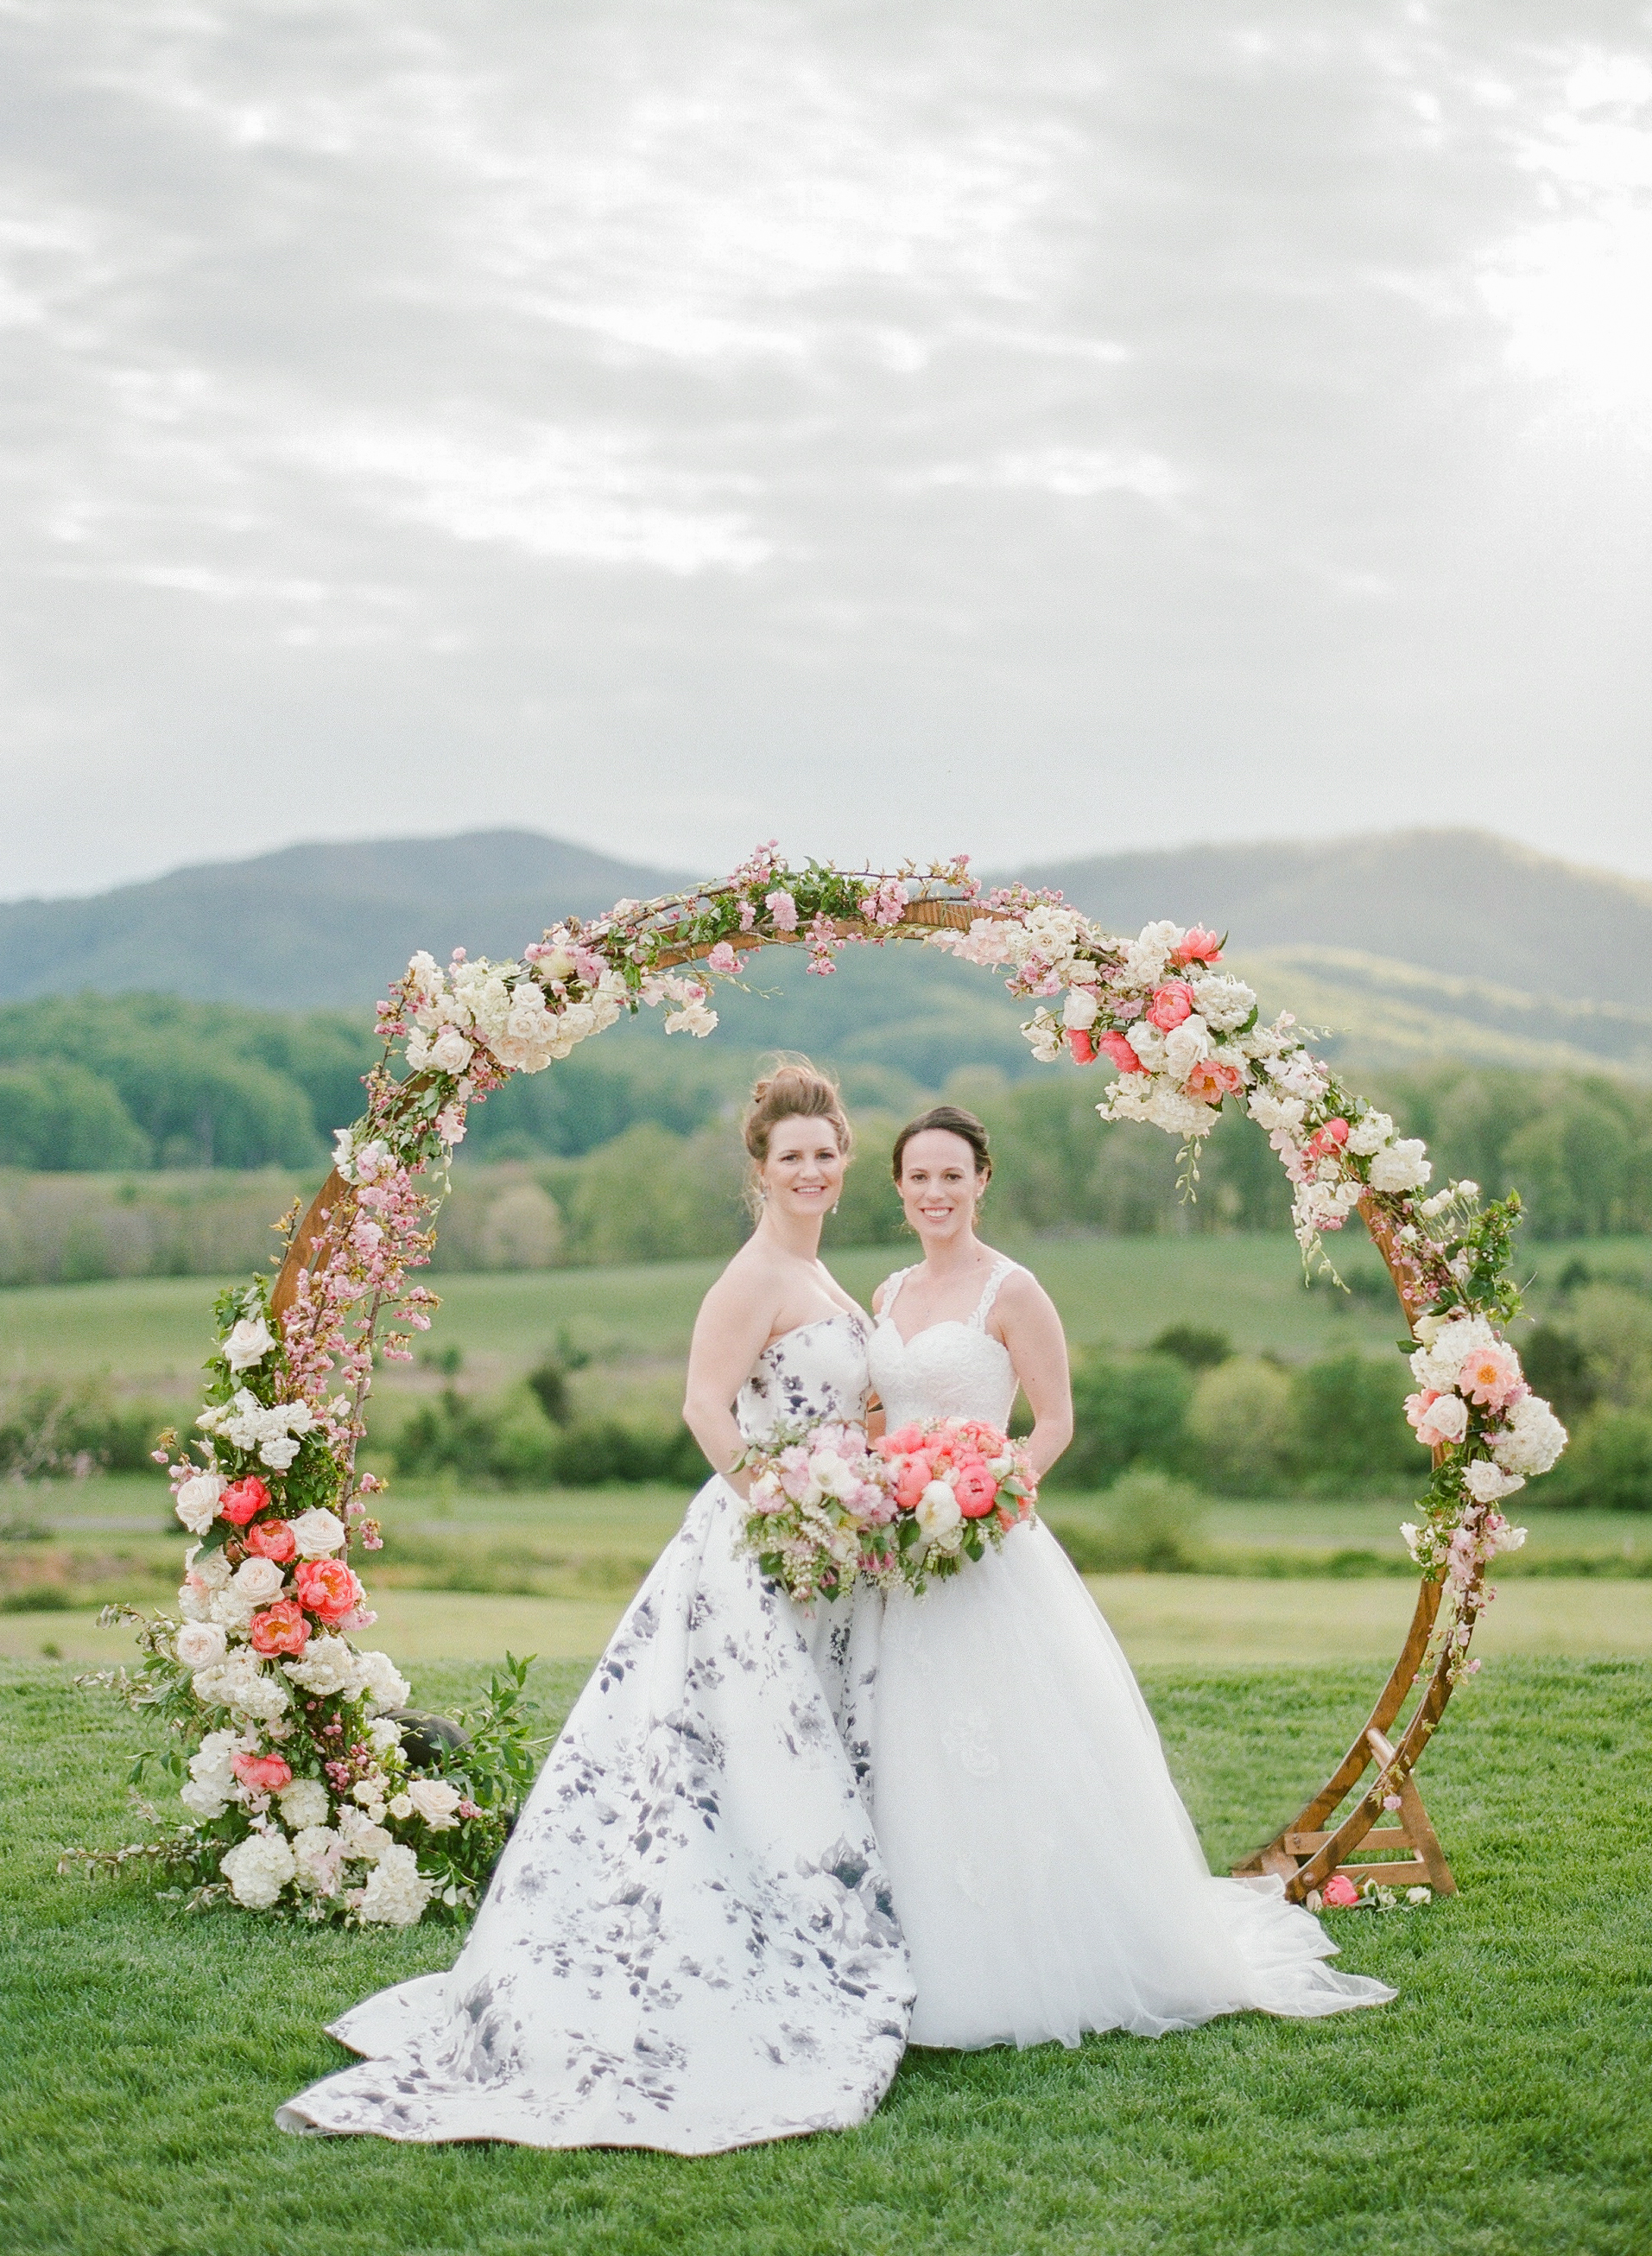 These Brides' Cherry Blossom-Inspired Wedding Unfolded in a Virginia Vineyard